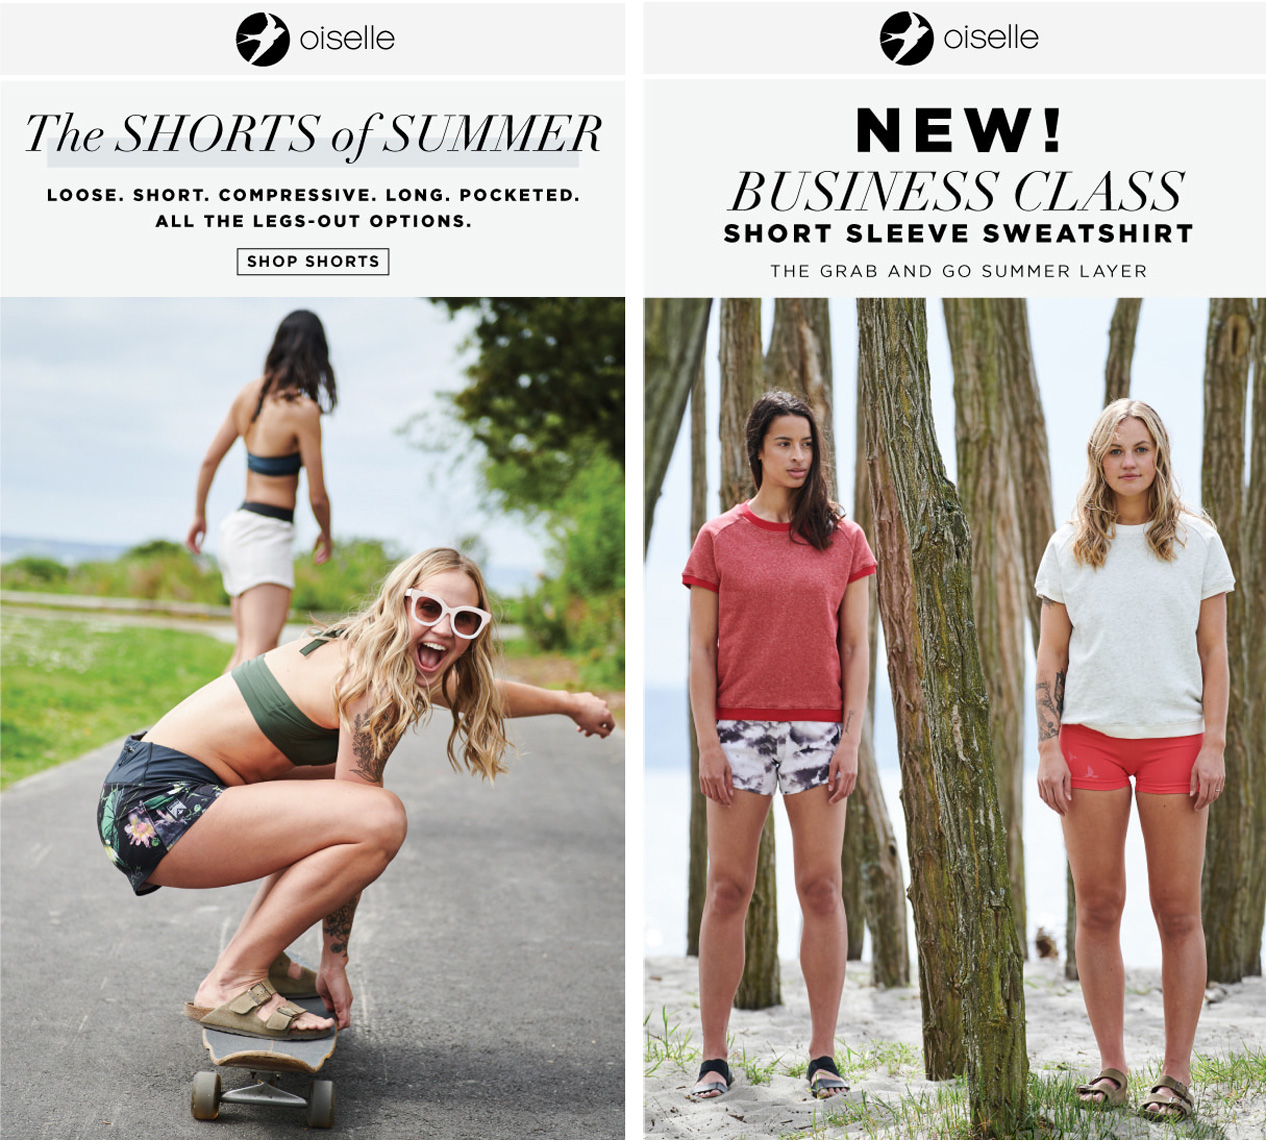 Oiselle spring advertising campaign photography by Amos Morgan Photo + Video